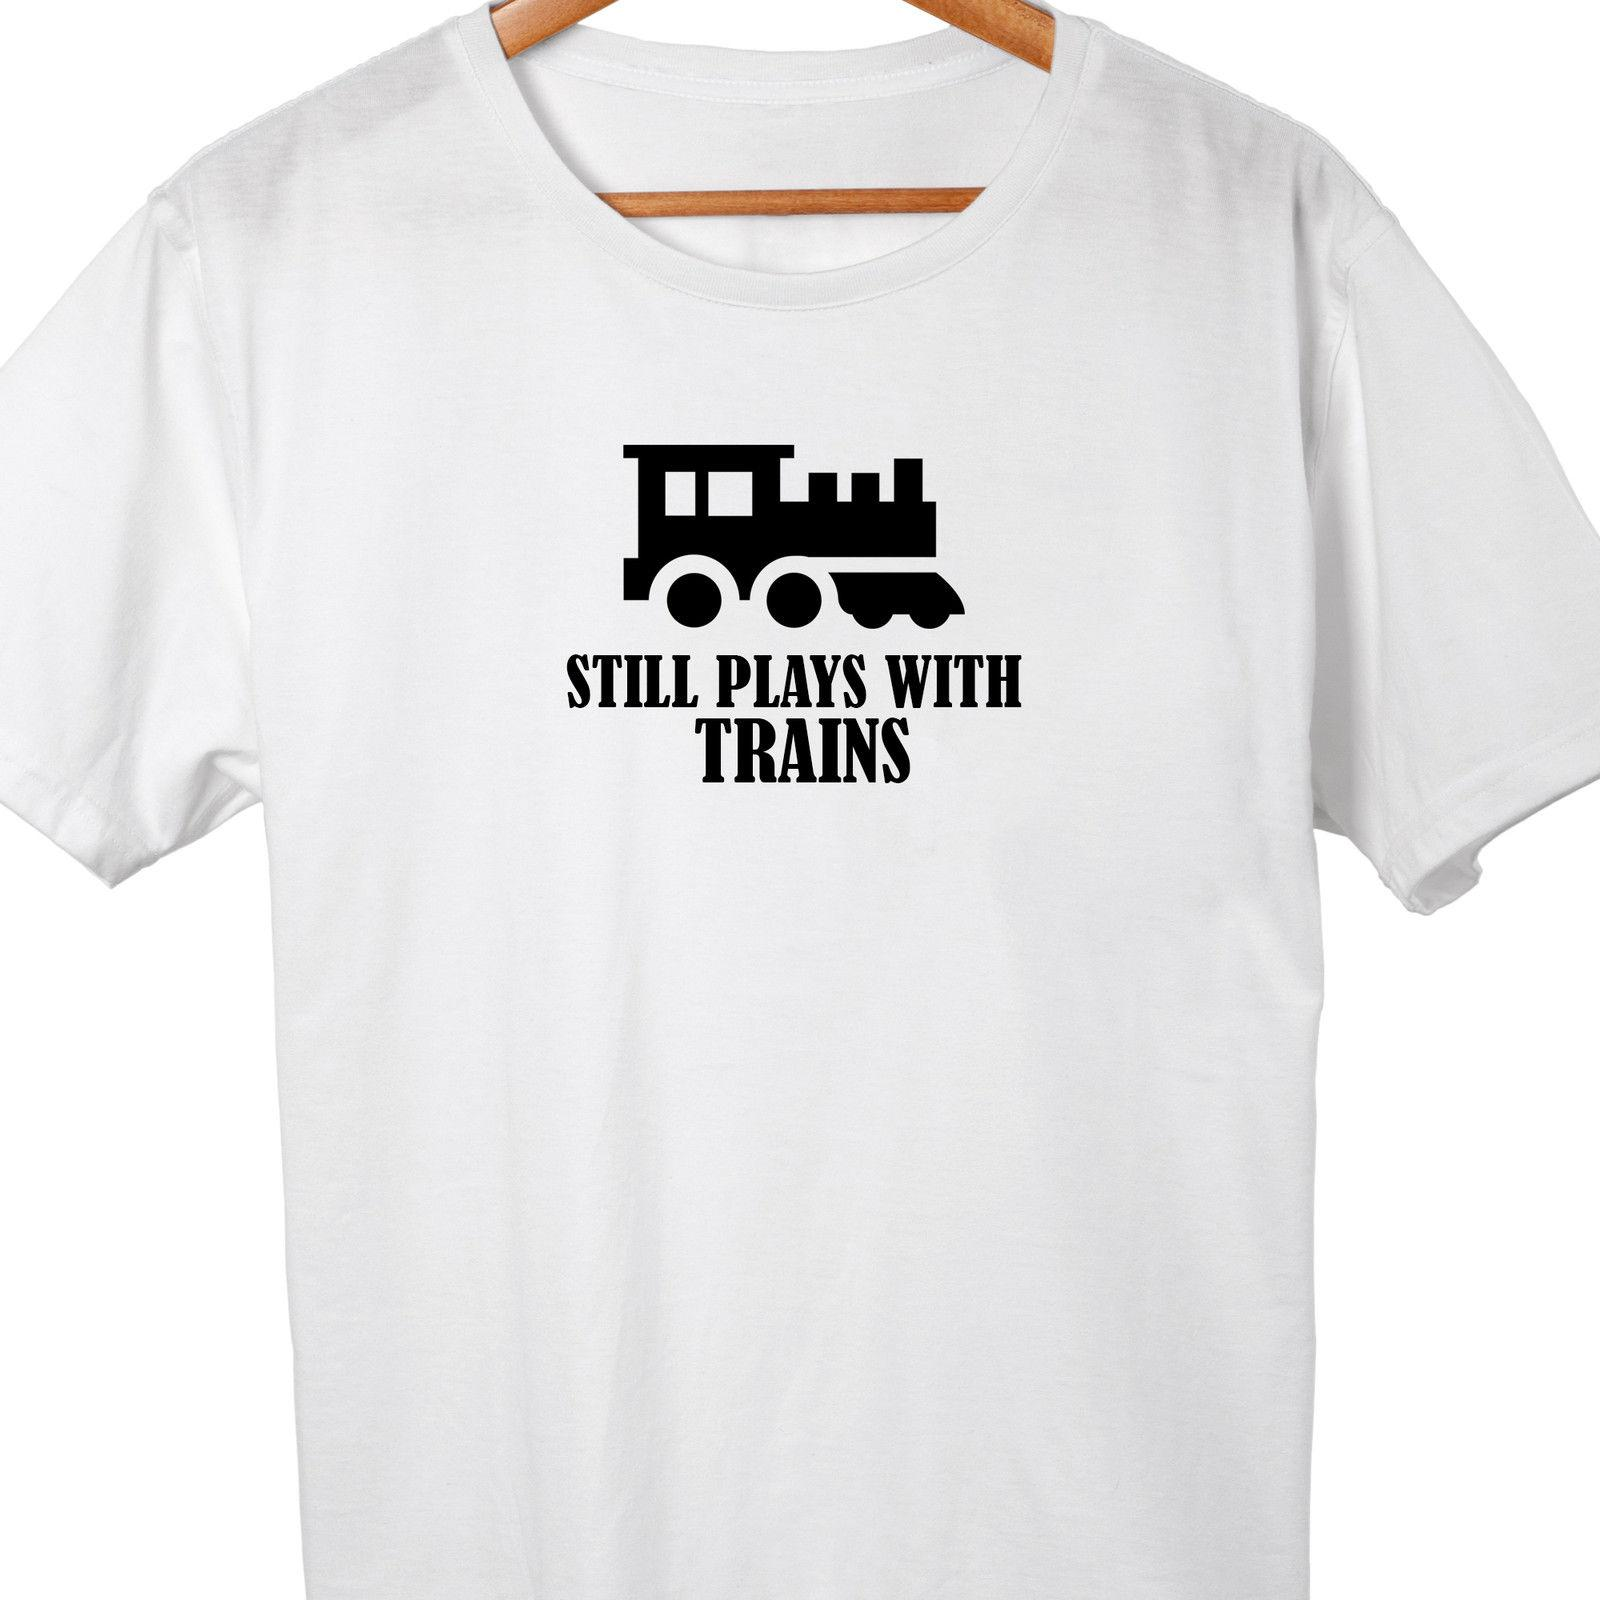 Still Plays With Trains T-shirt Funny Railway Train Driver Comedy dad son  xmasFunny free shipping Unisex Casual